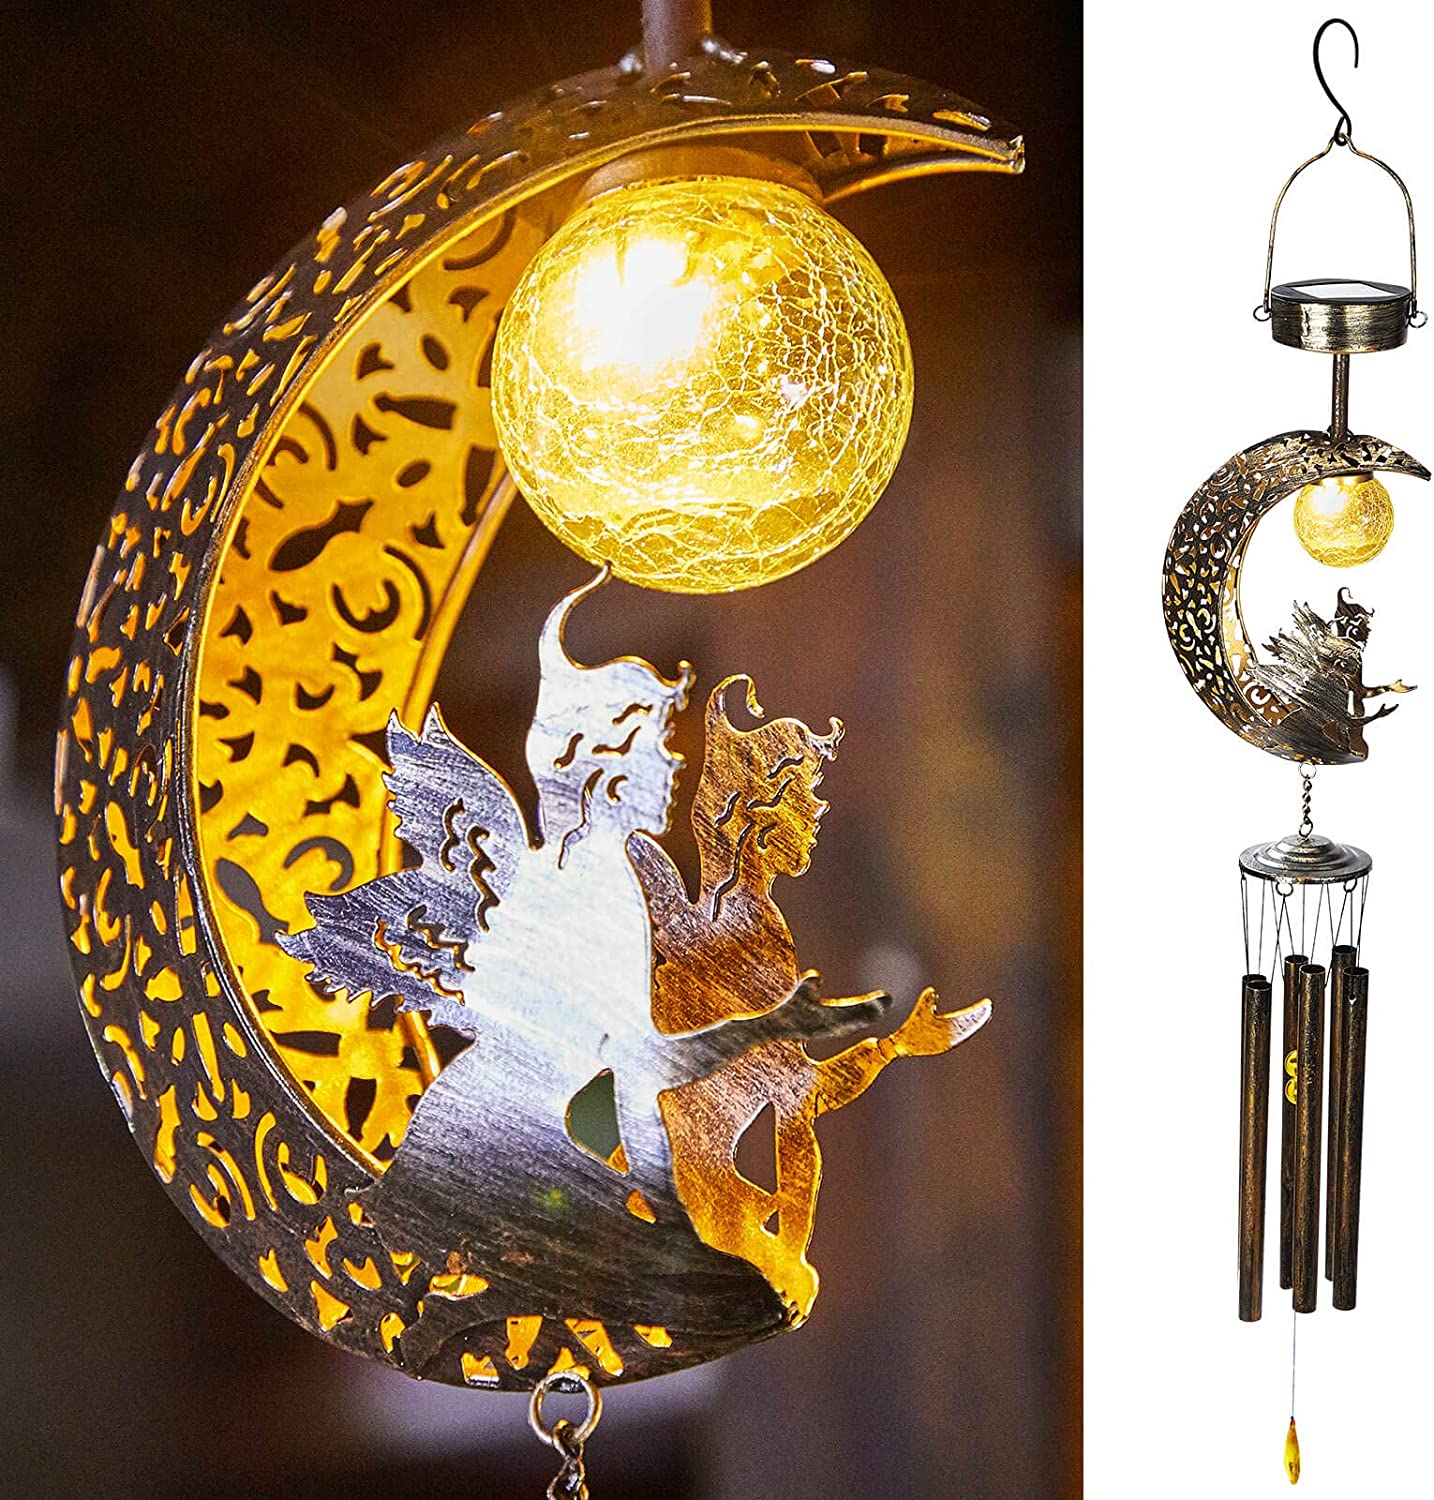 Go2garden Solar Wind Chimes Outdoor Lights Decorative Large Moon Angel Sympathy Memorial Gift, Metal Crackle Class Ball, Warm LED Hanging Lighting for Outside, Yard, Patio Decoration (Bronze)